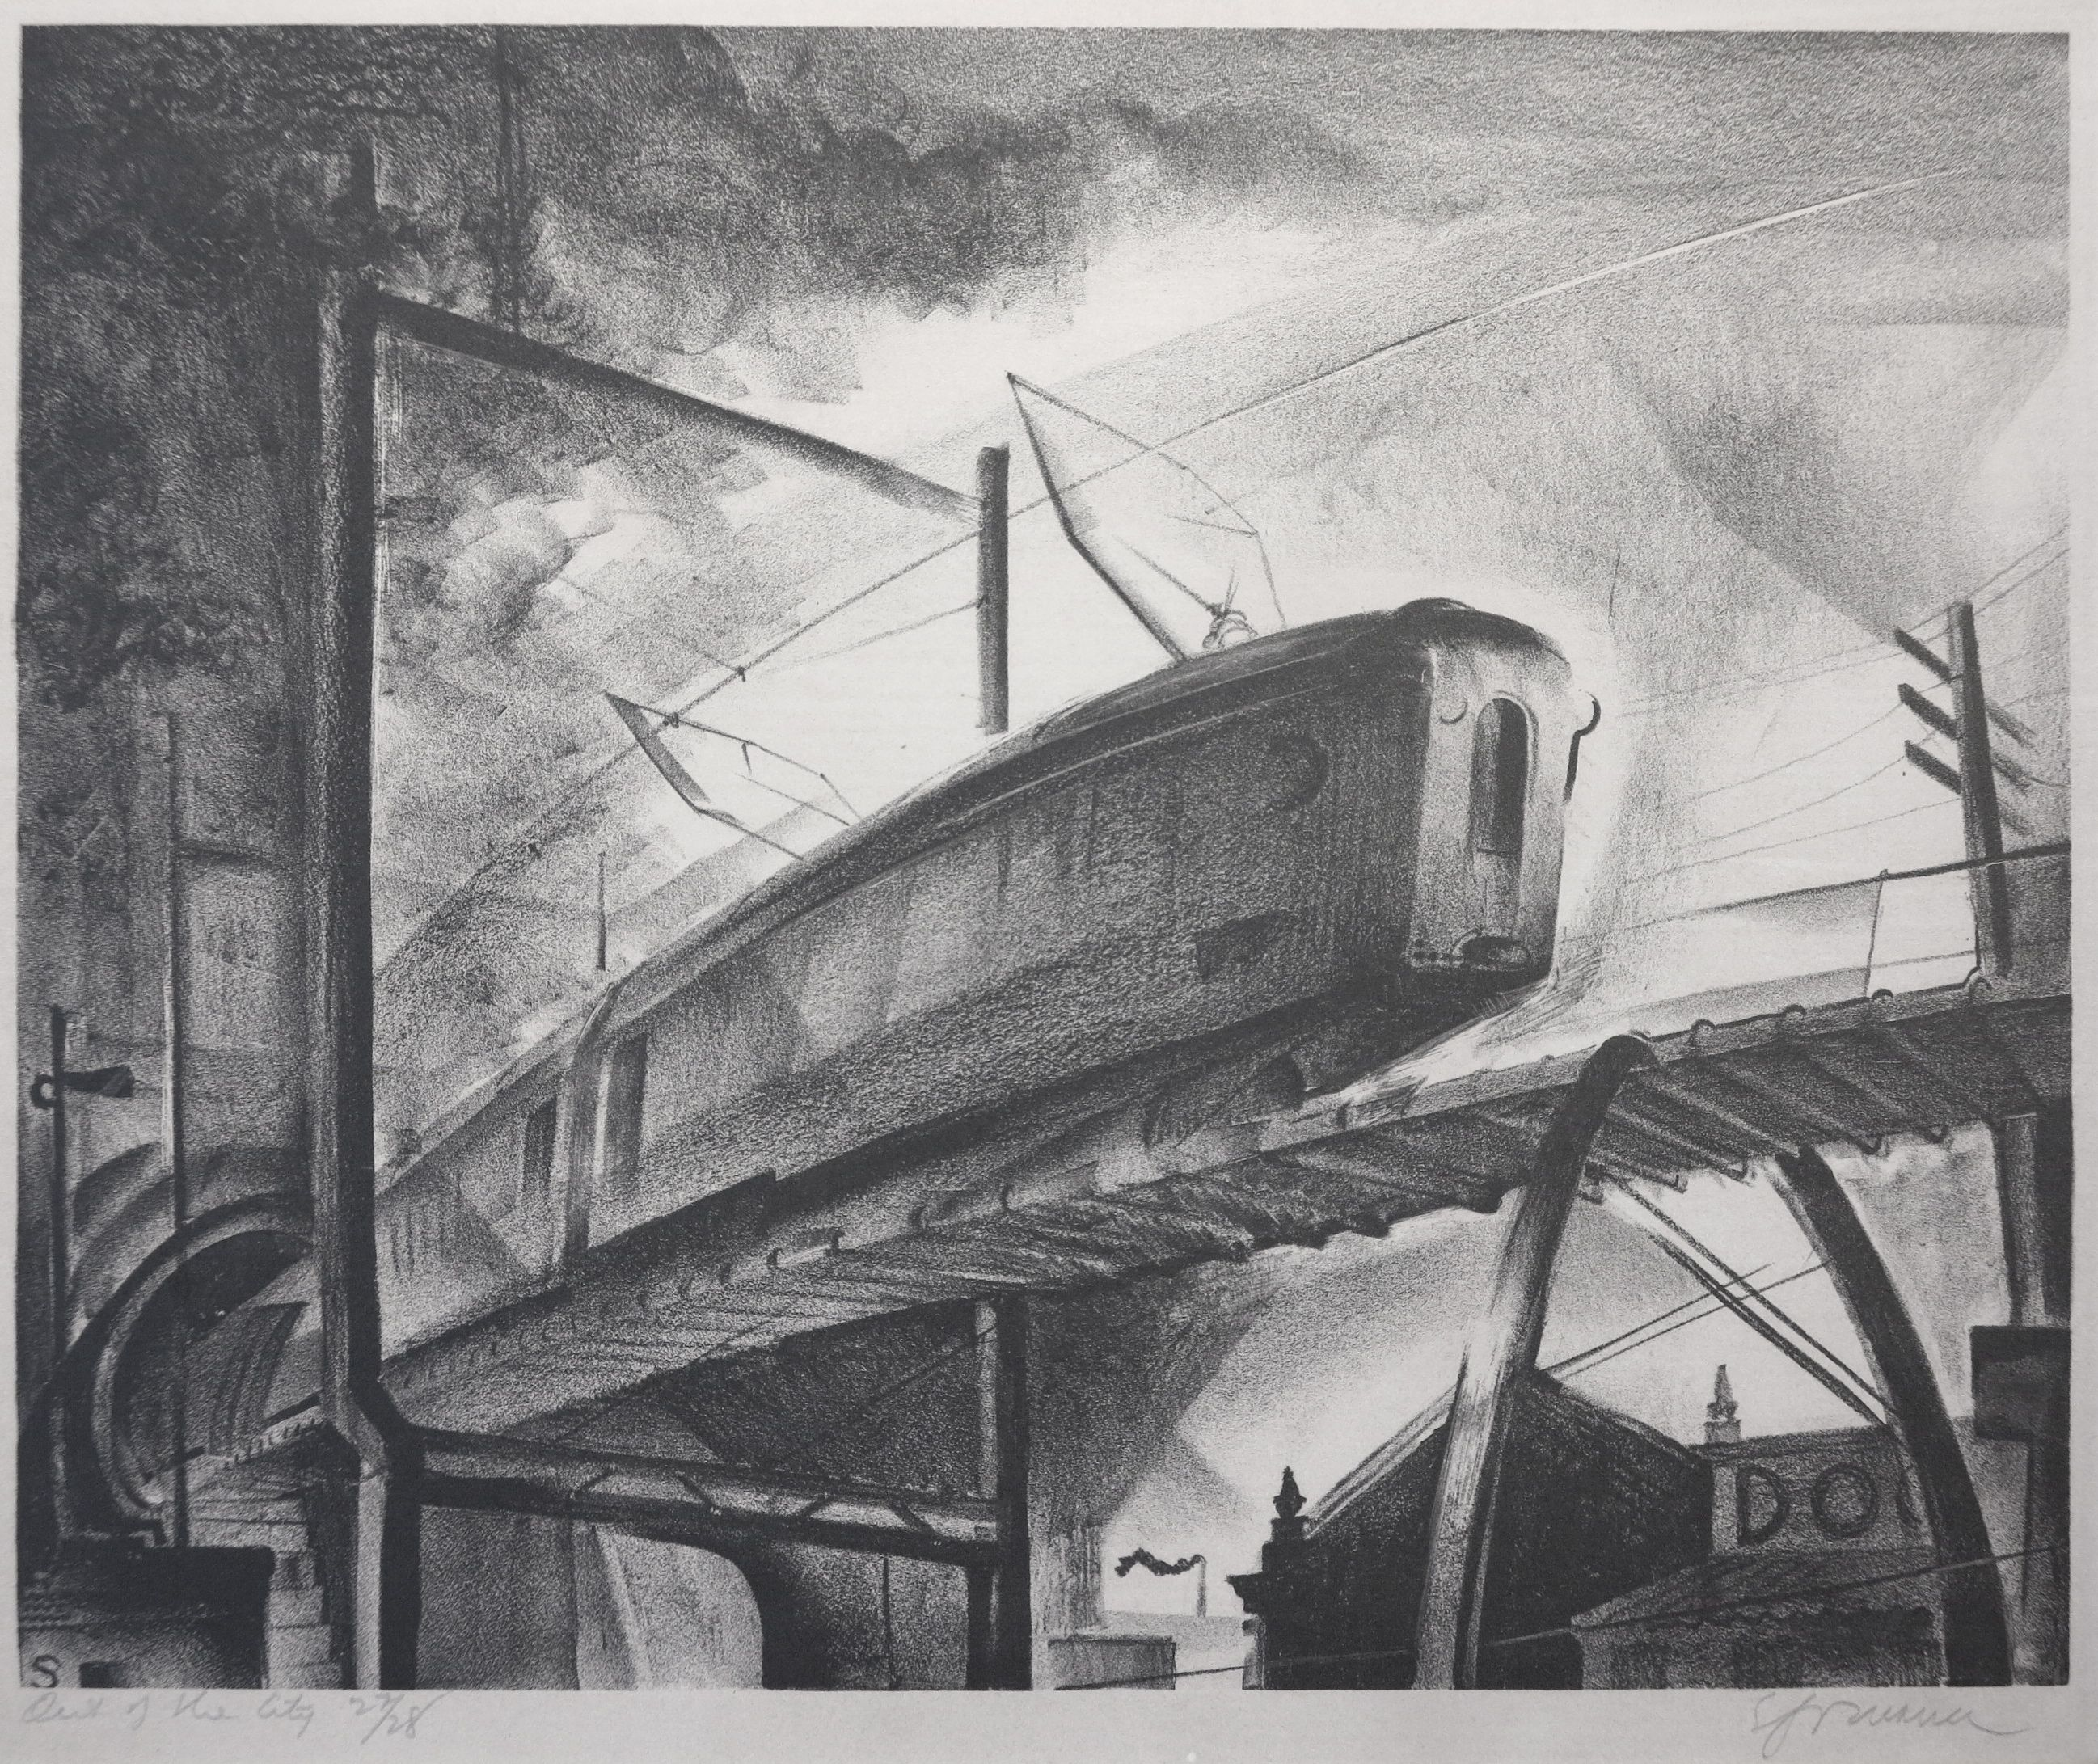 Benton Murdoch Spruance (1904-1967). Out of the City, 1930 (FL #33) Ed. 28. Lithograph on wove paper